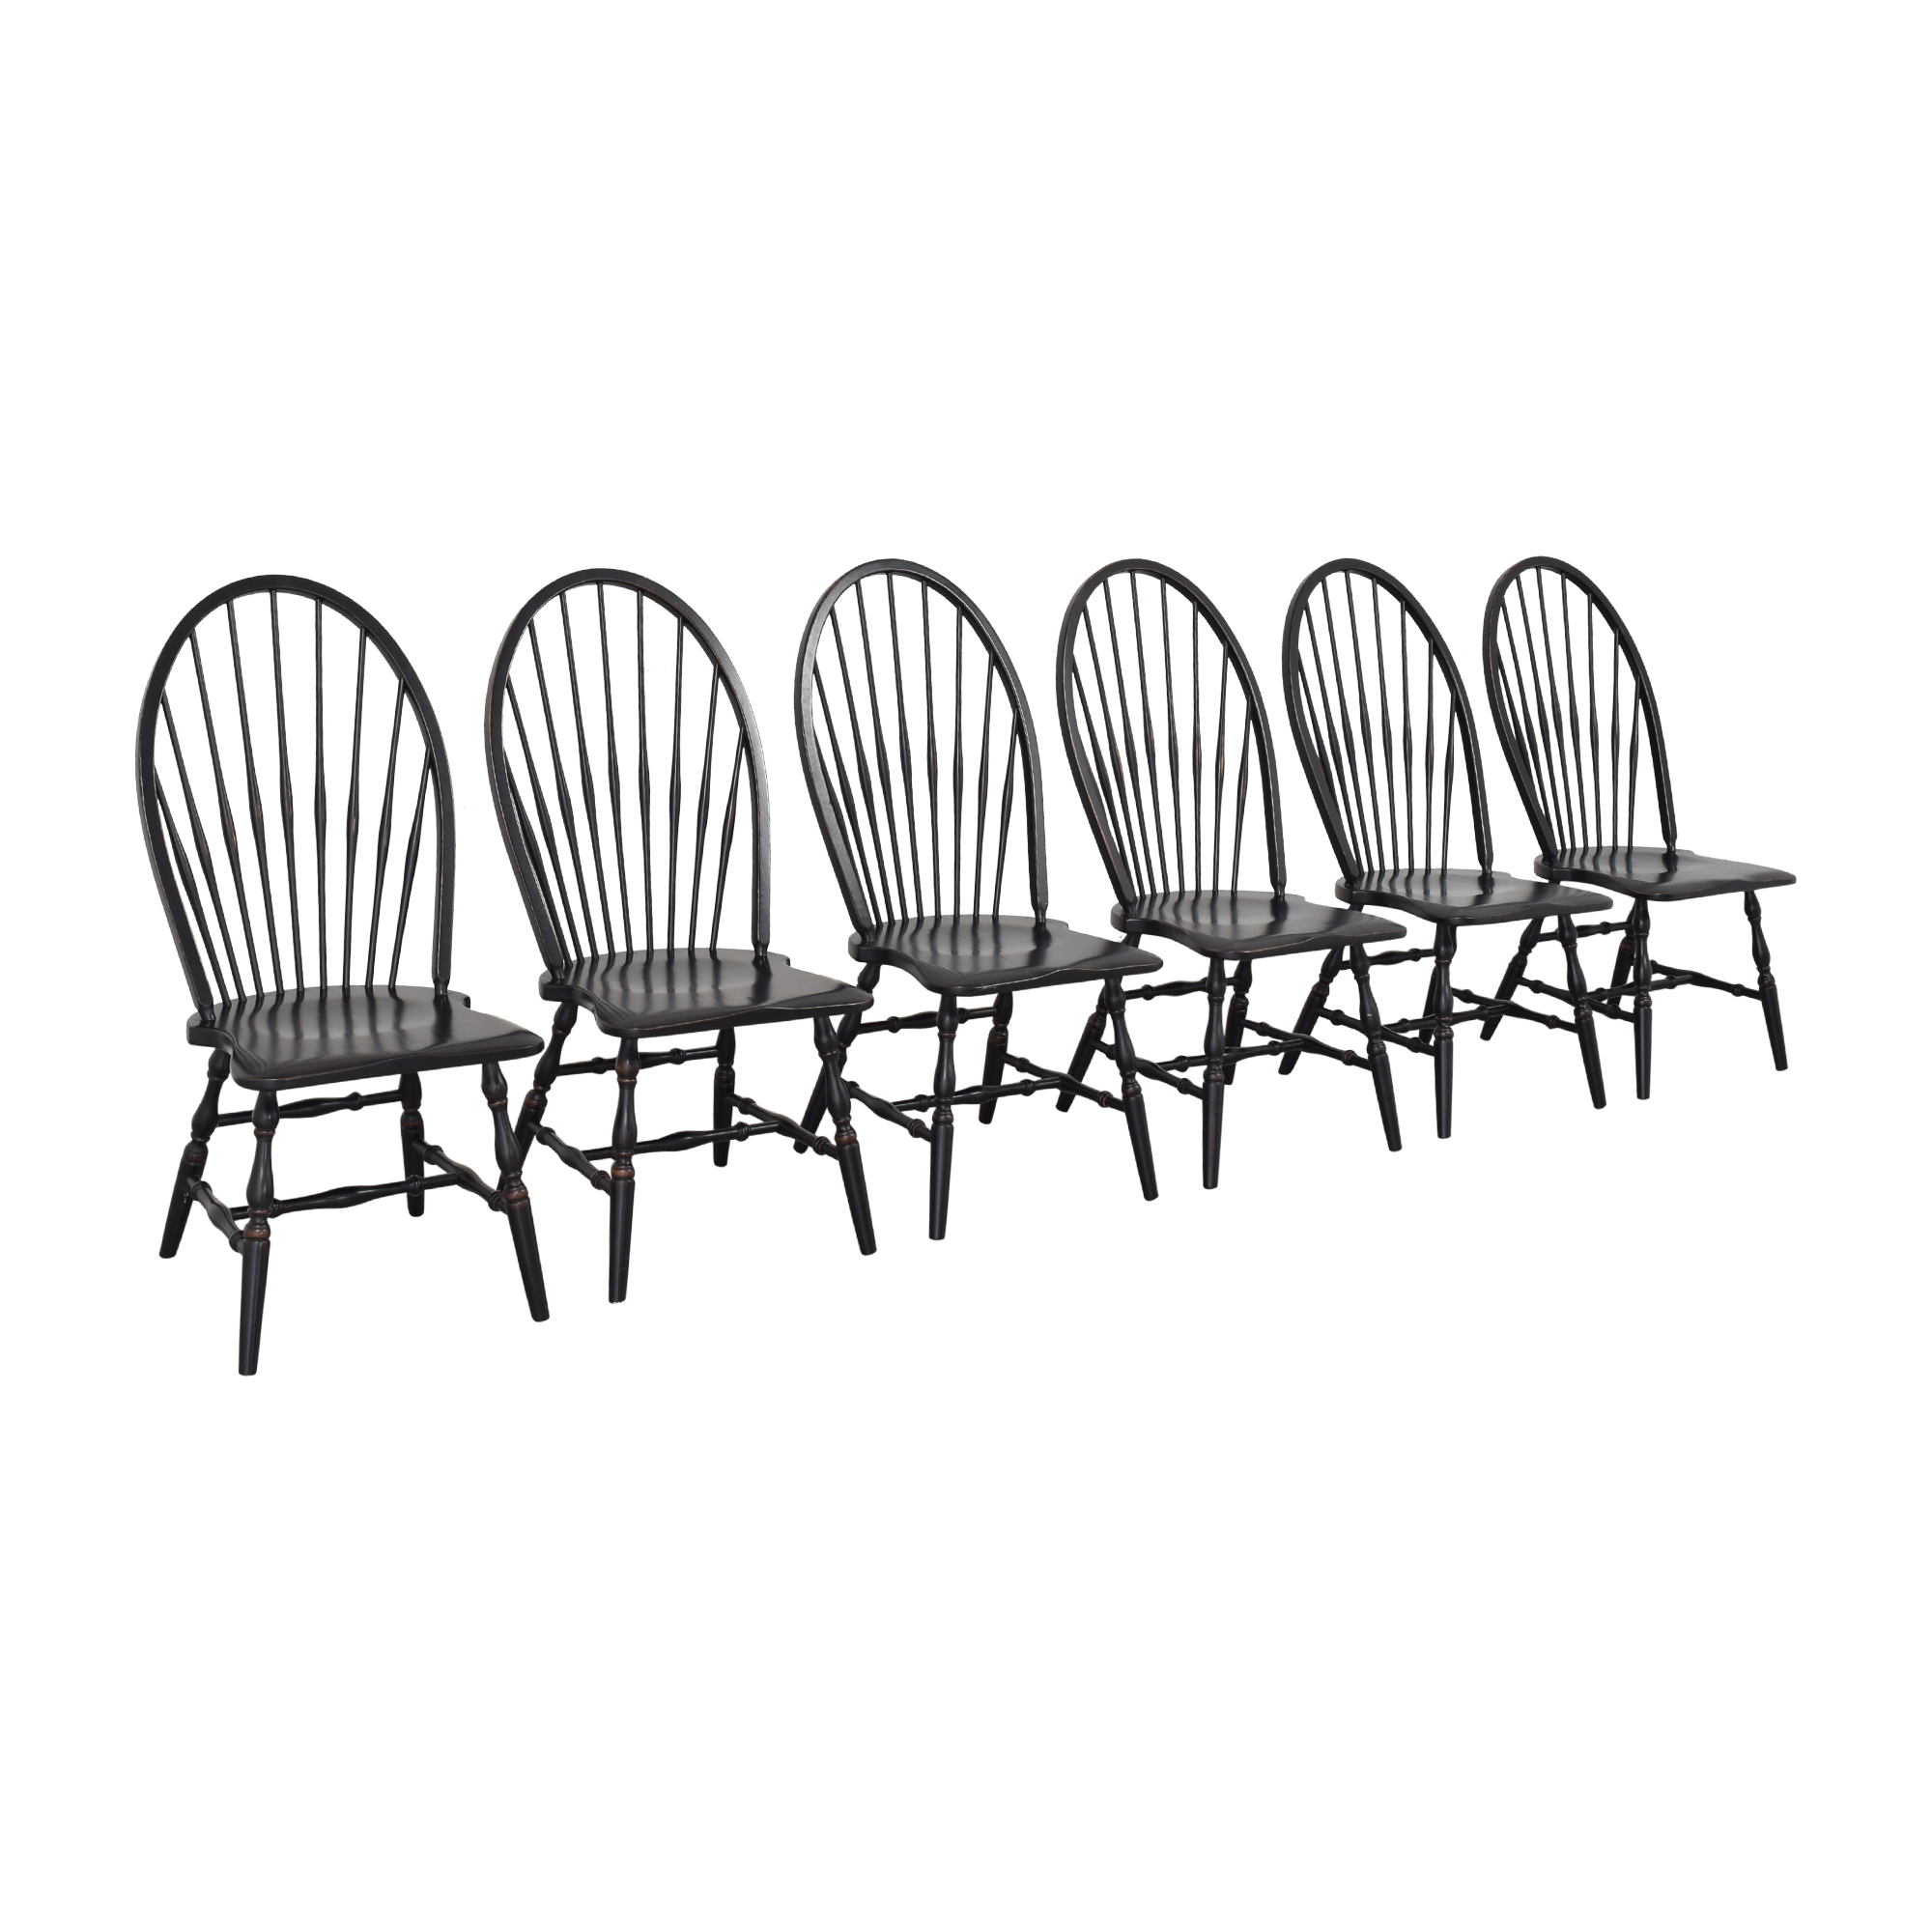 Country Willow Country Willow Windsor Dining Chairs ma